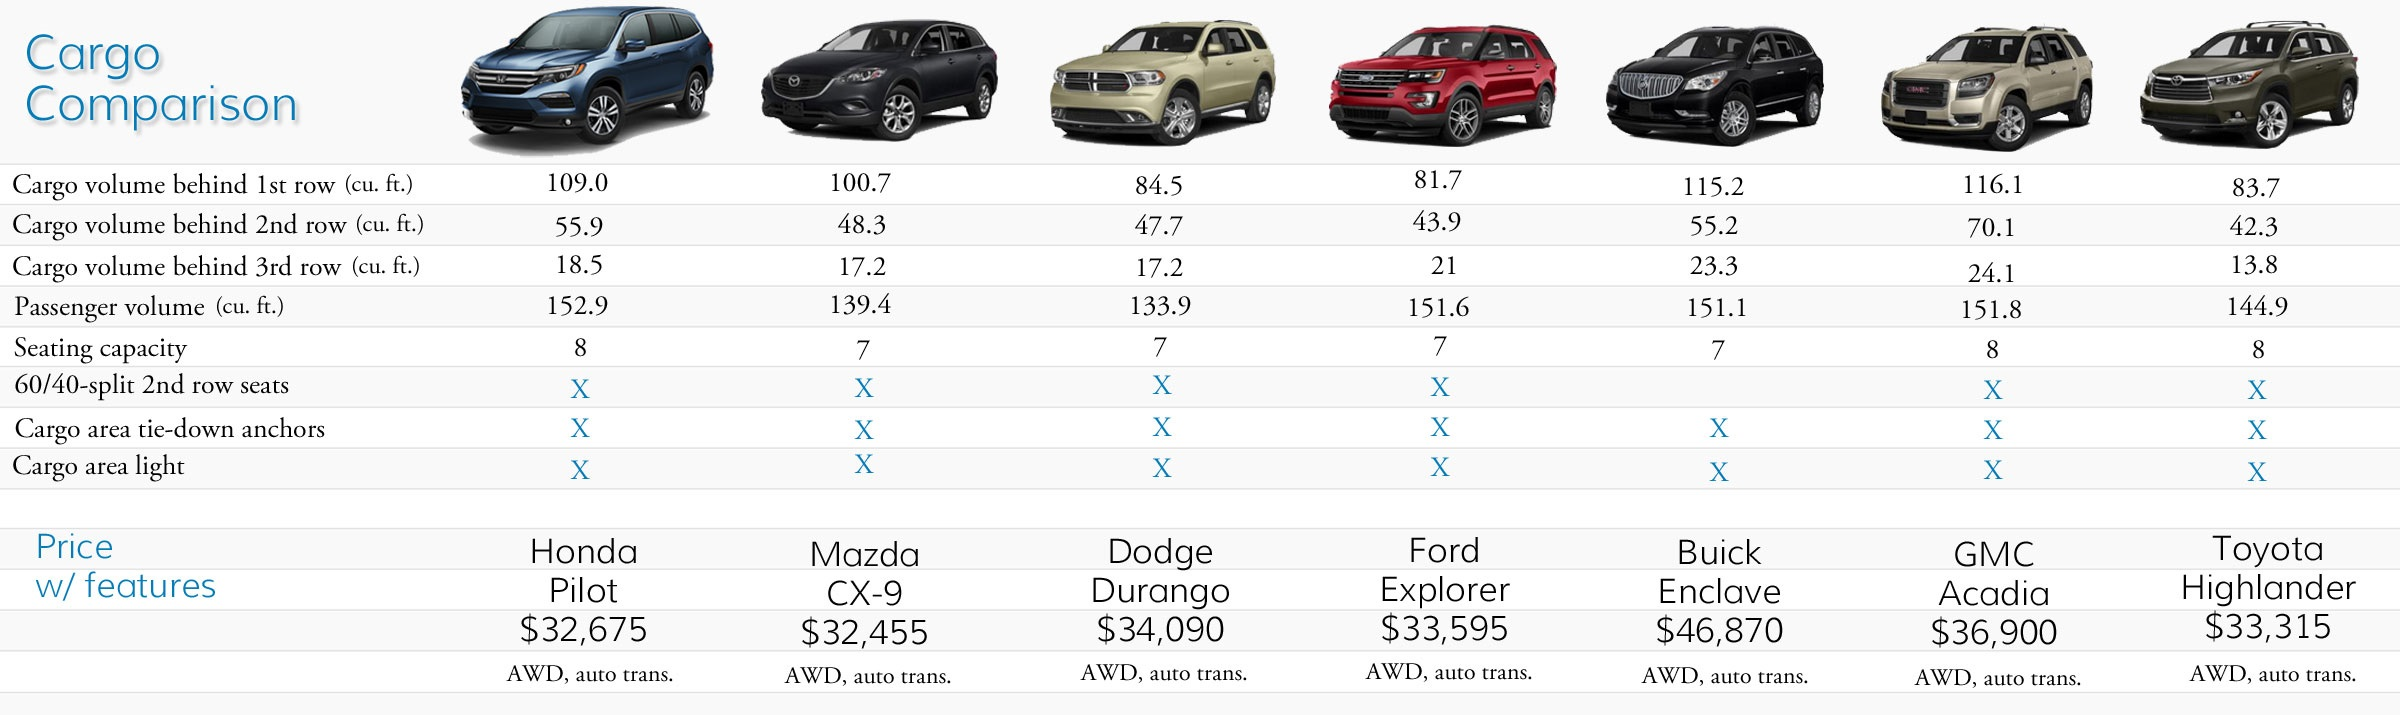 2016 Honda Pilot Cargo Comparison To 3 Row Suvs Fisher Honda